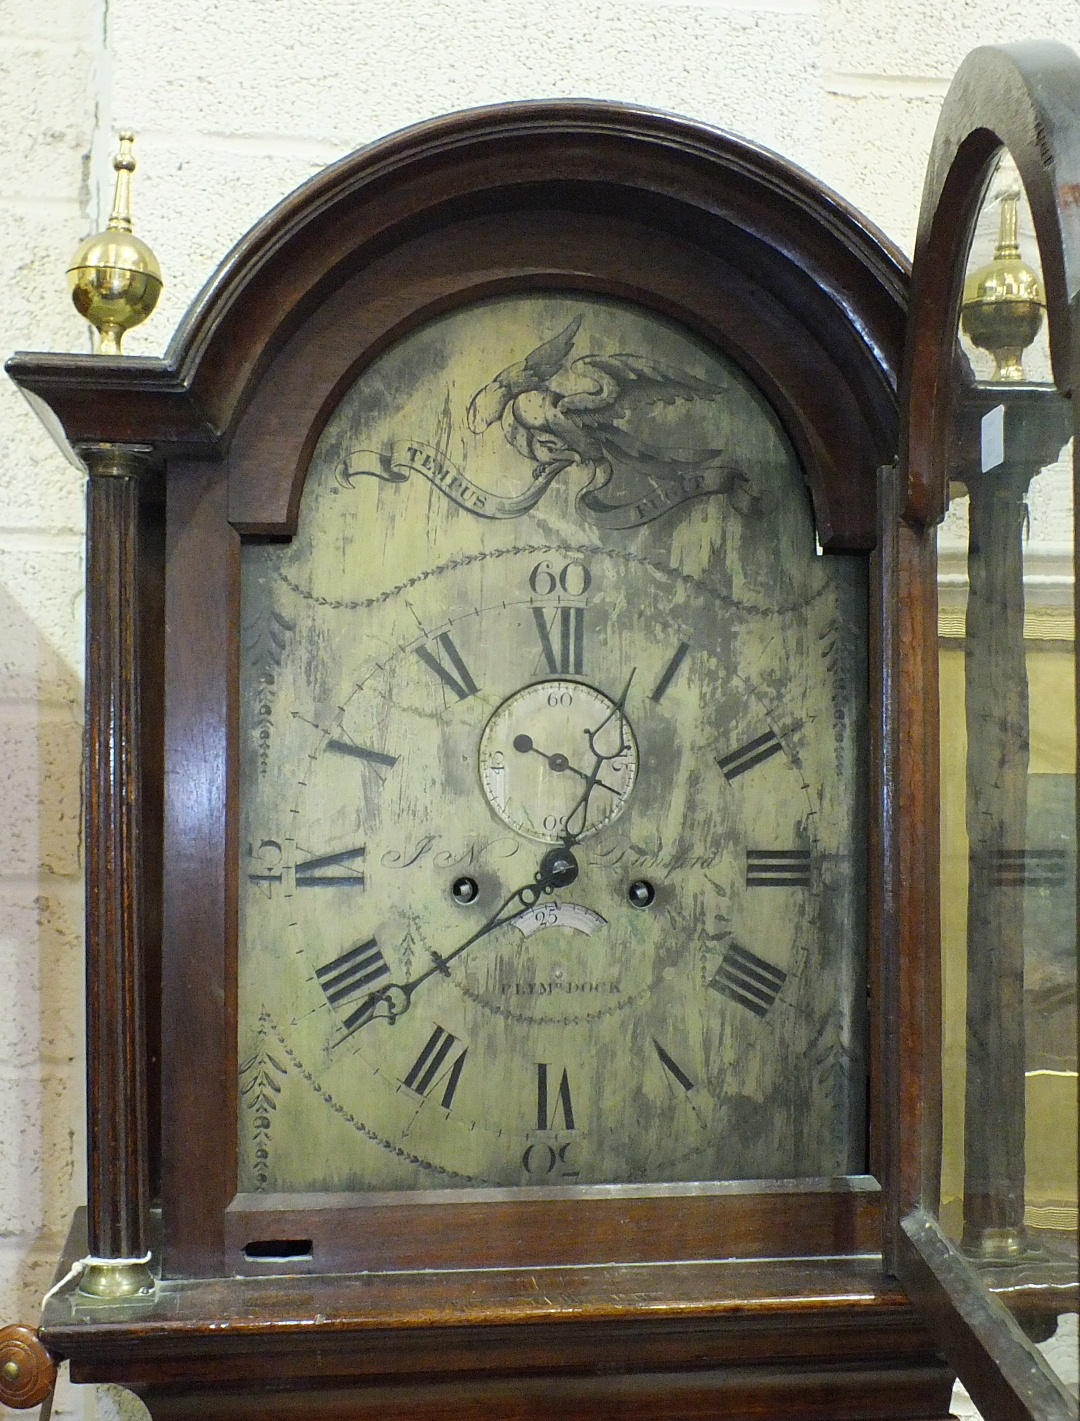 Jas N Dunsford, Plymouth Dock, an early-19th century 8-day long case clock, the arched silvered dial